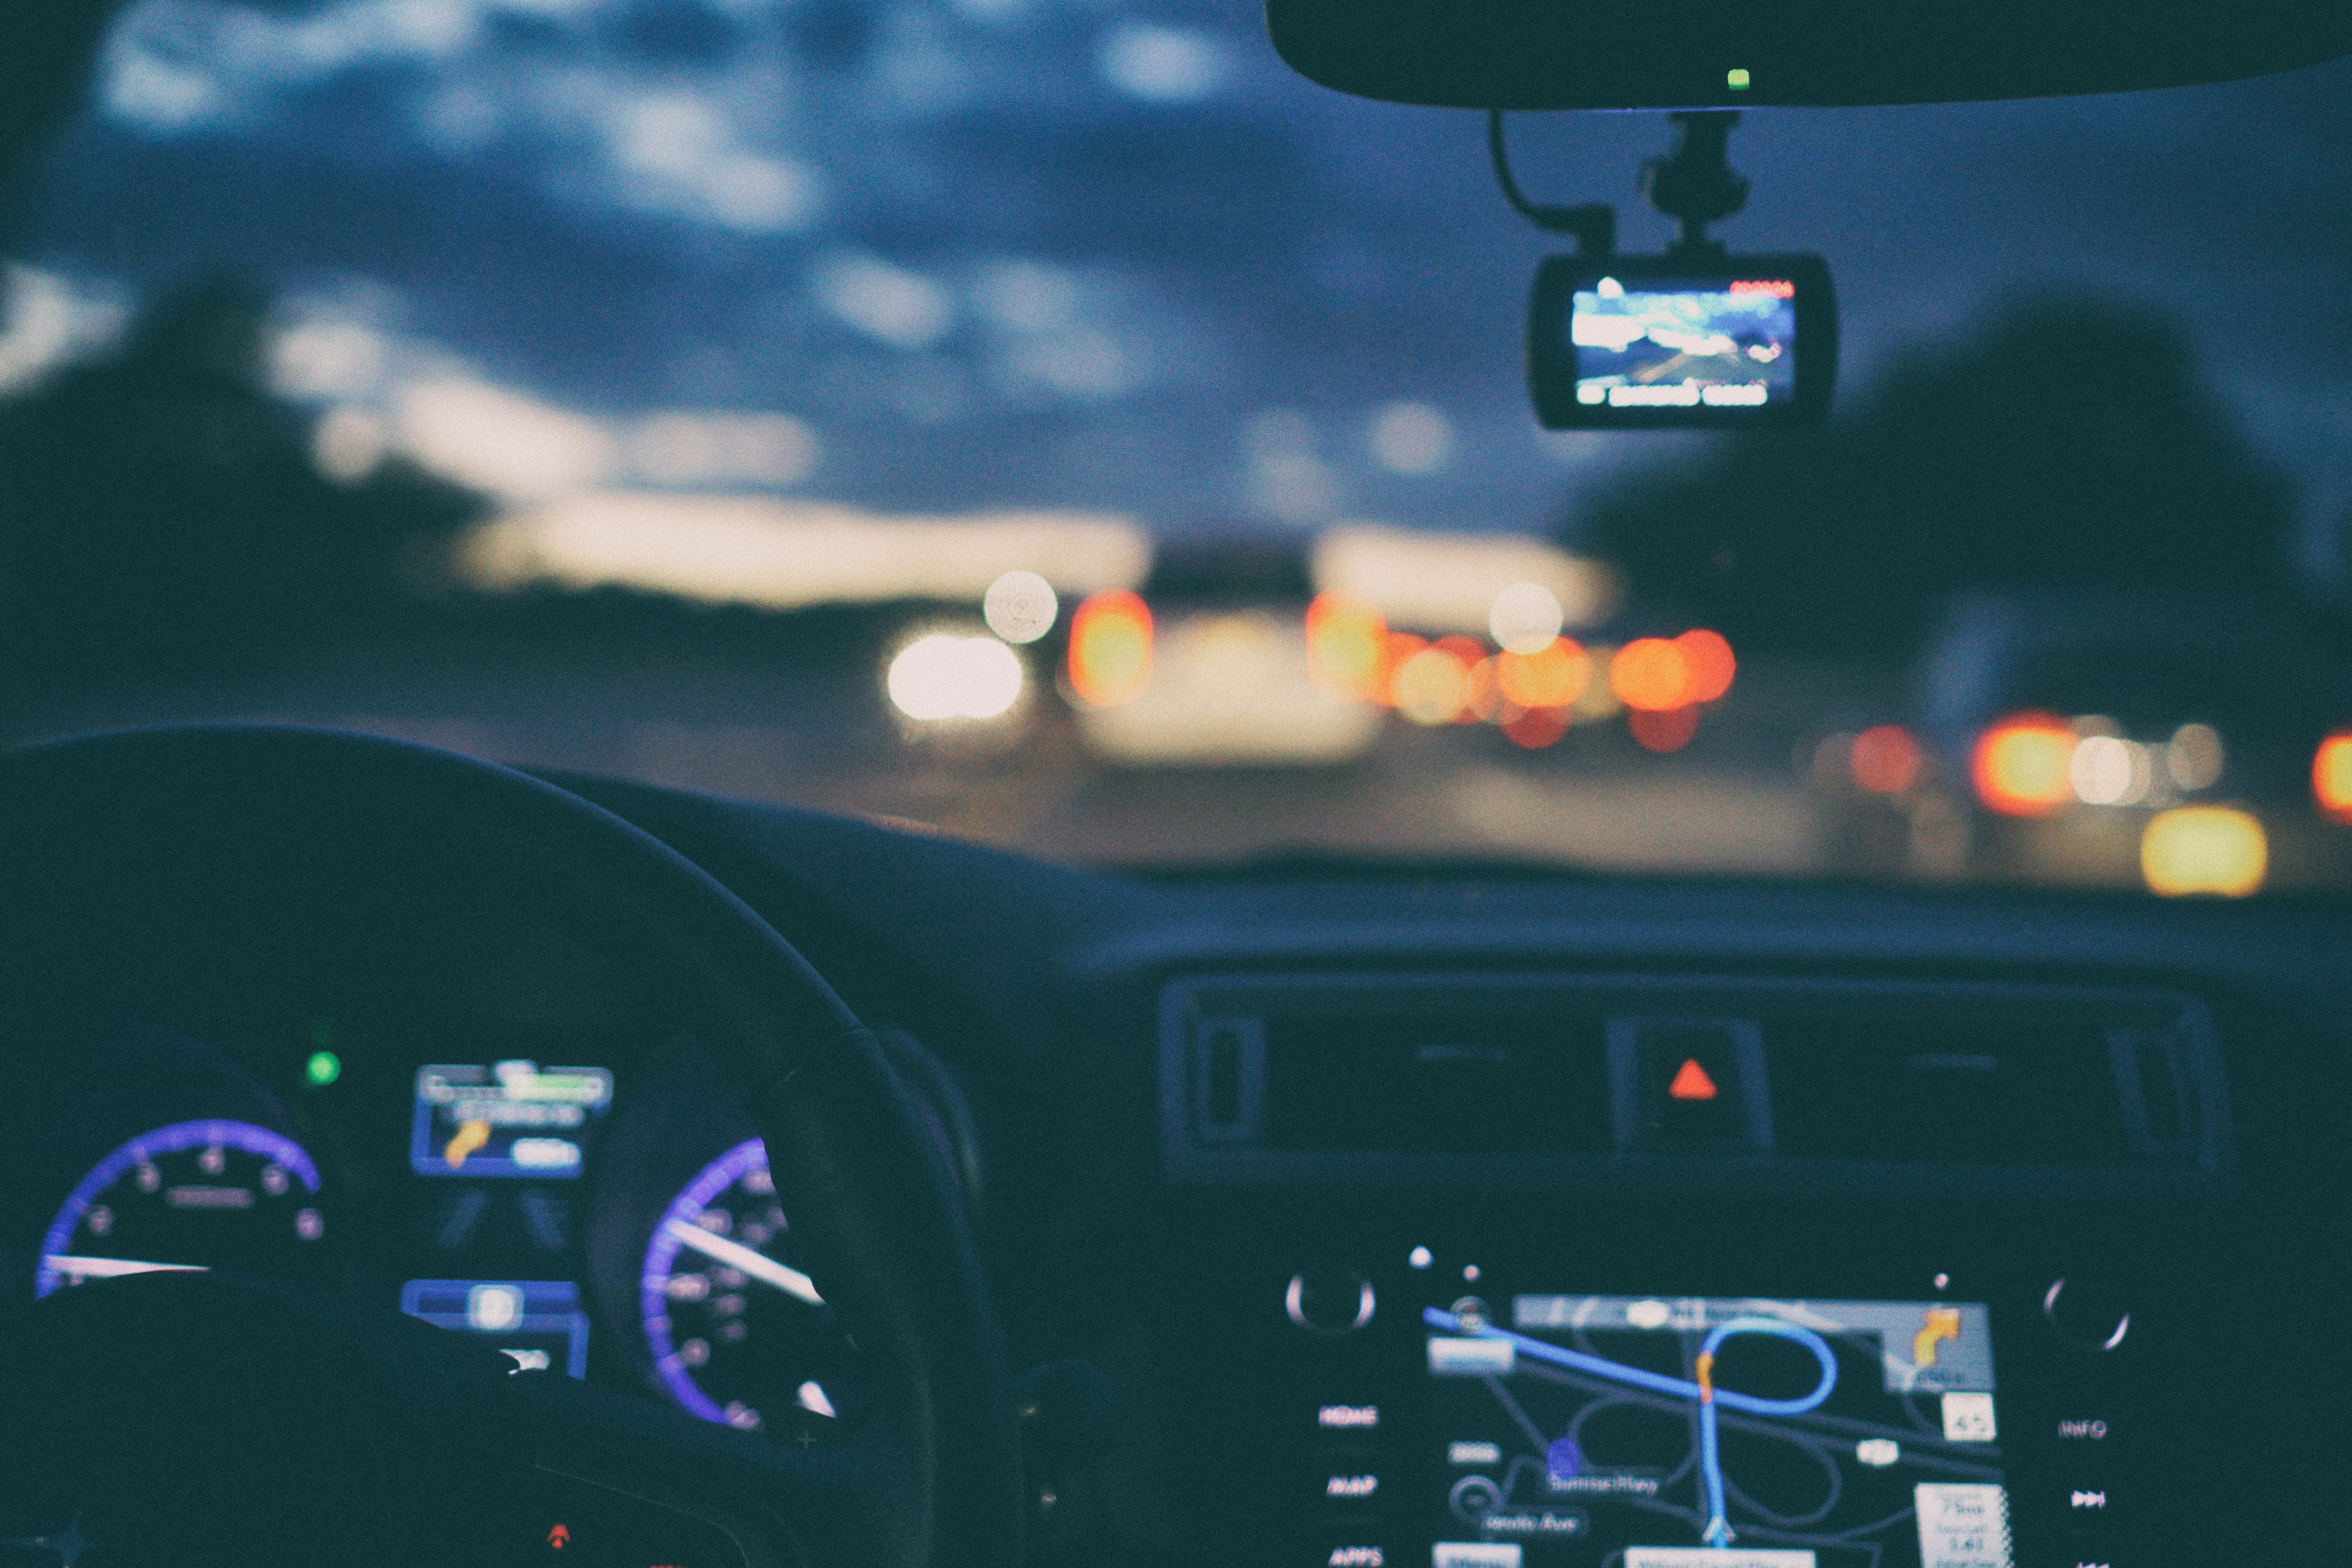 Blurry image of car dashboard and windshield at night.